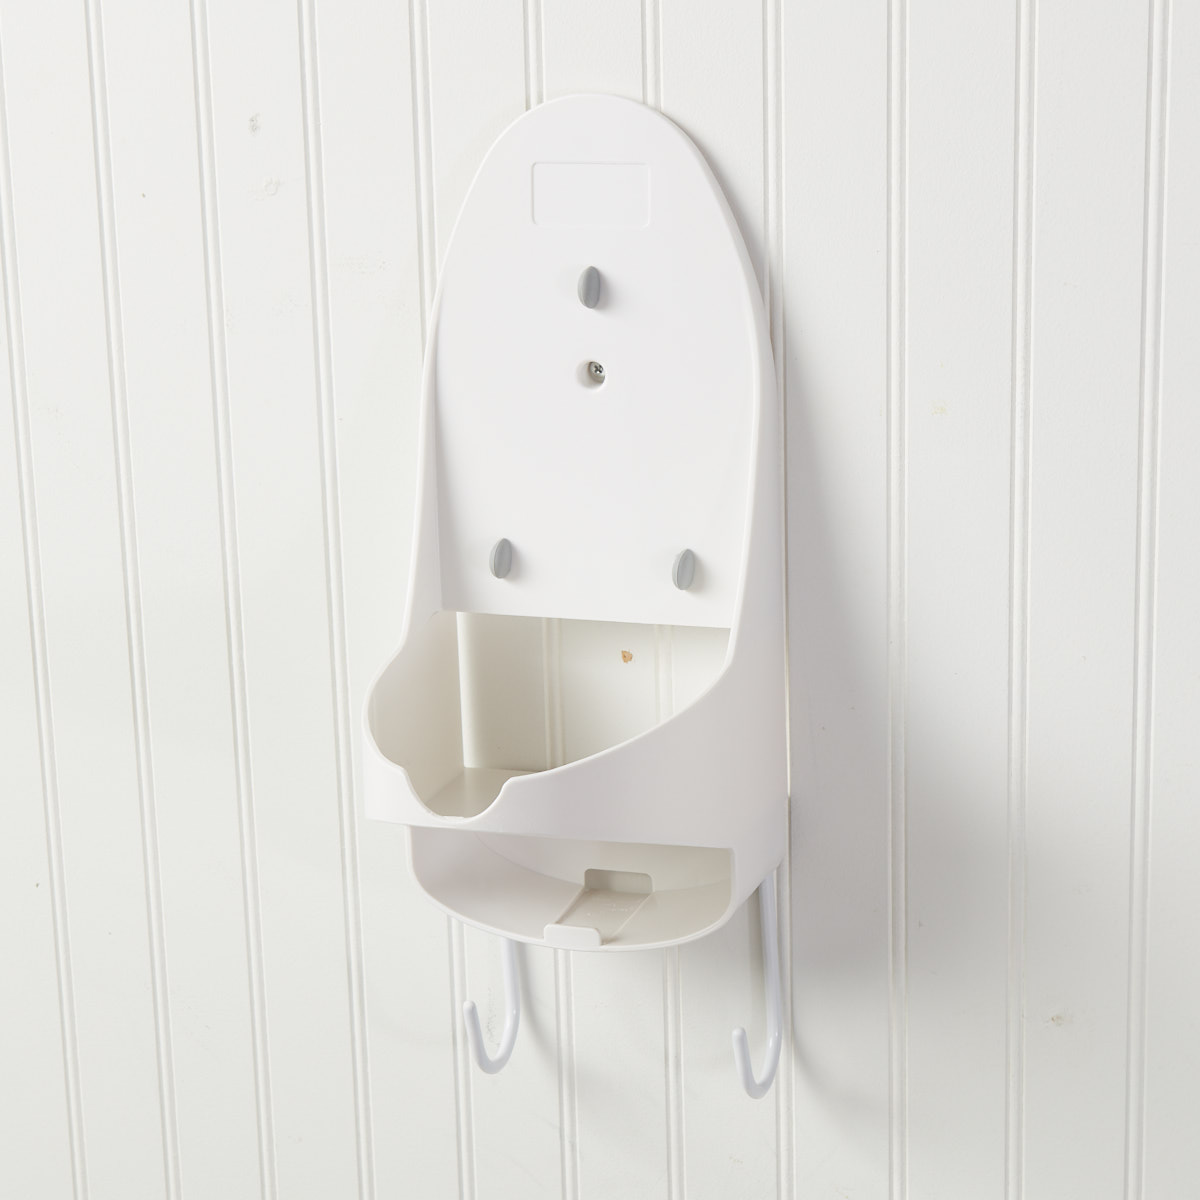 White Wall Mount Bracket Steam Iron Holder with Slot for T-Leg Ironing Board